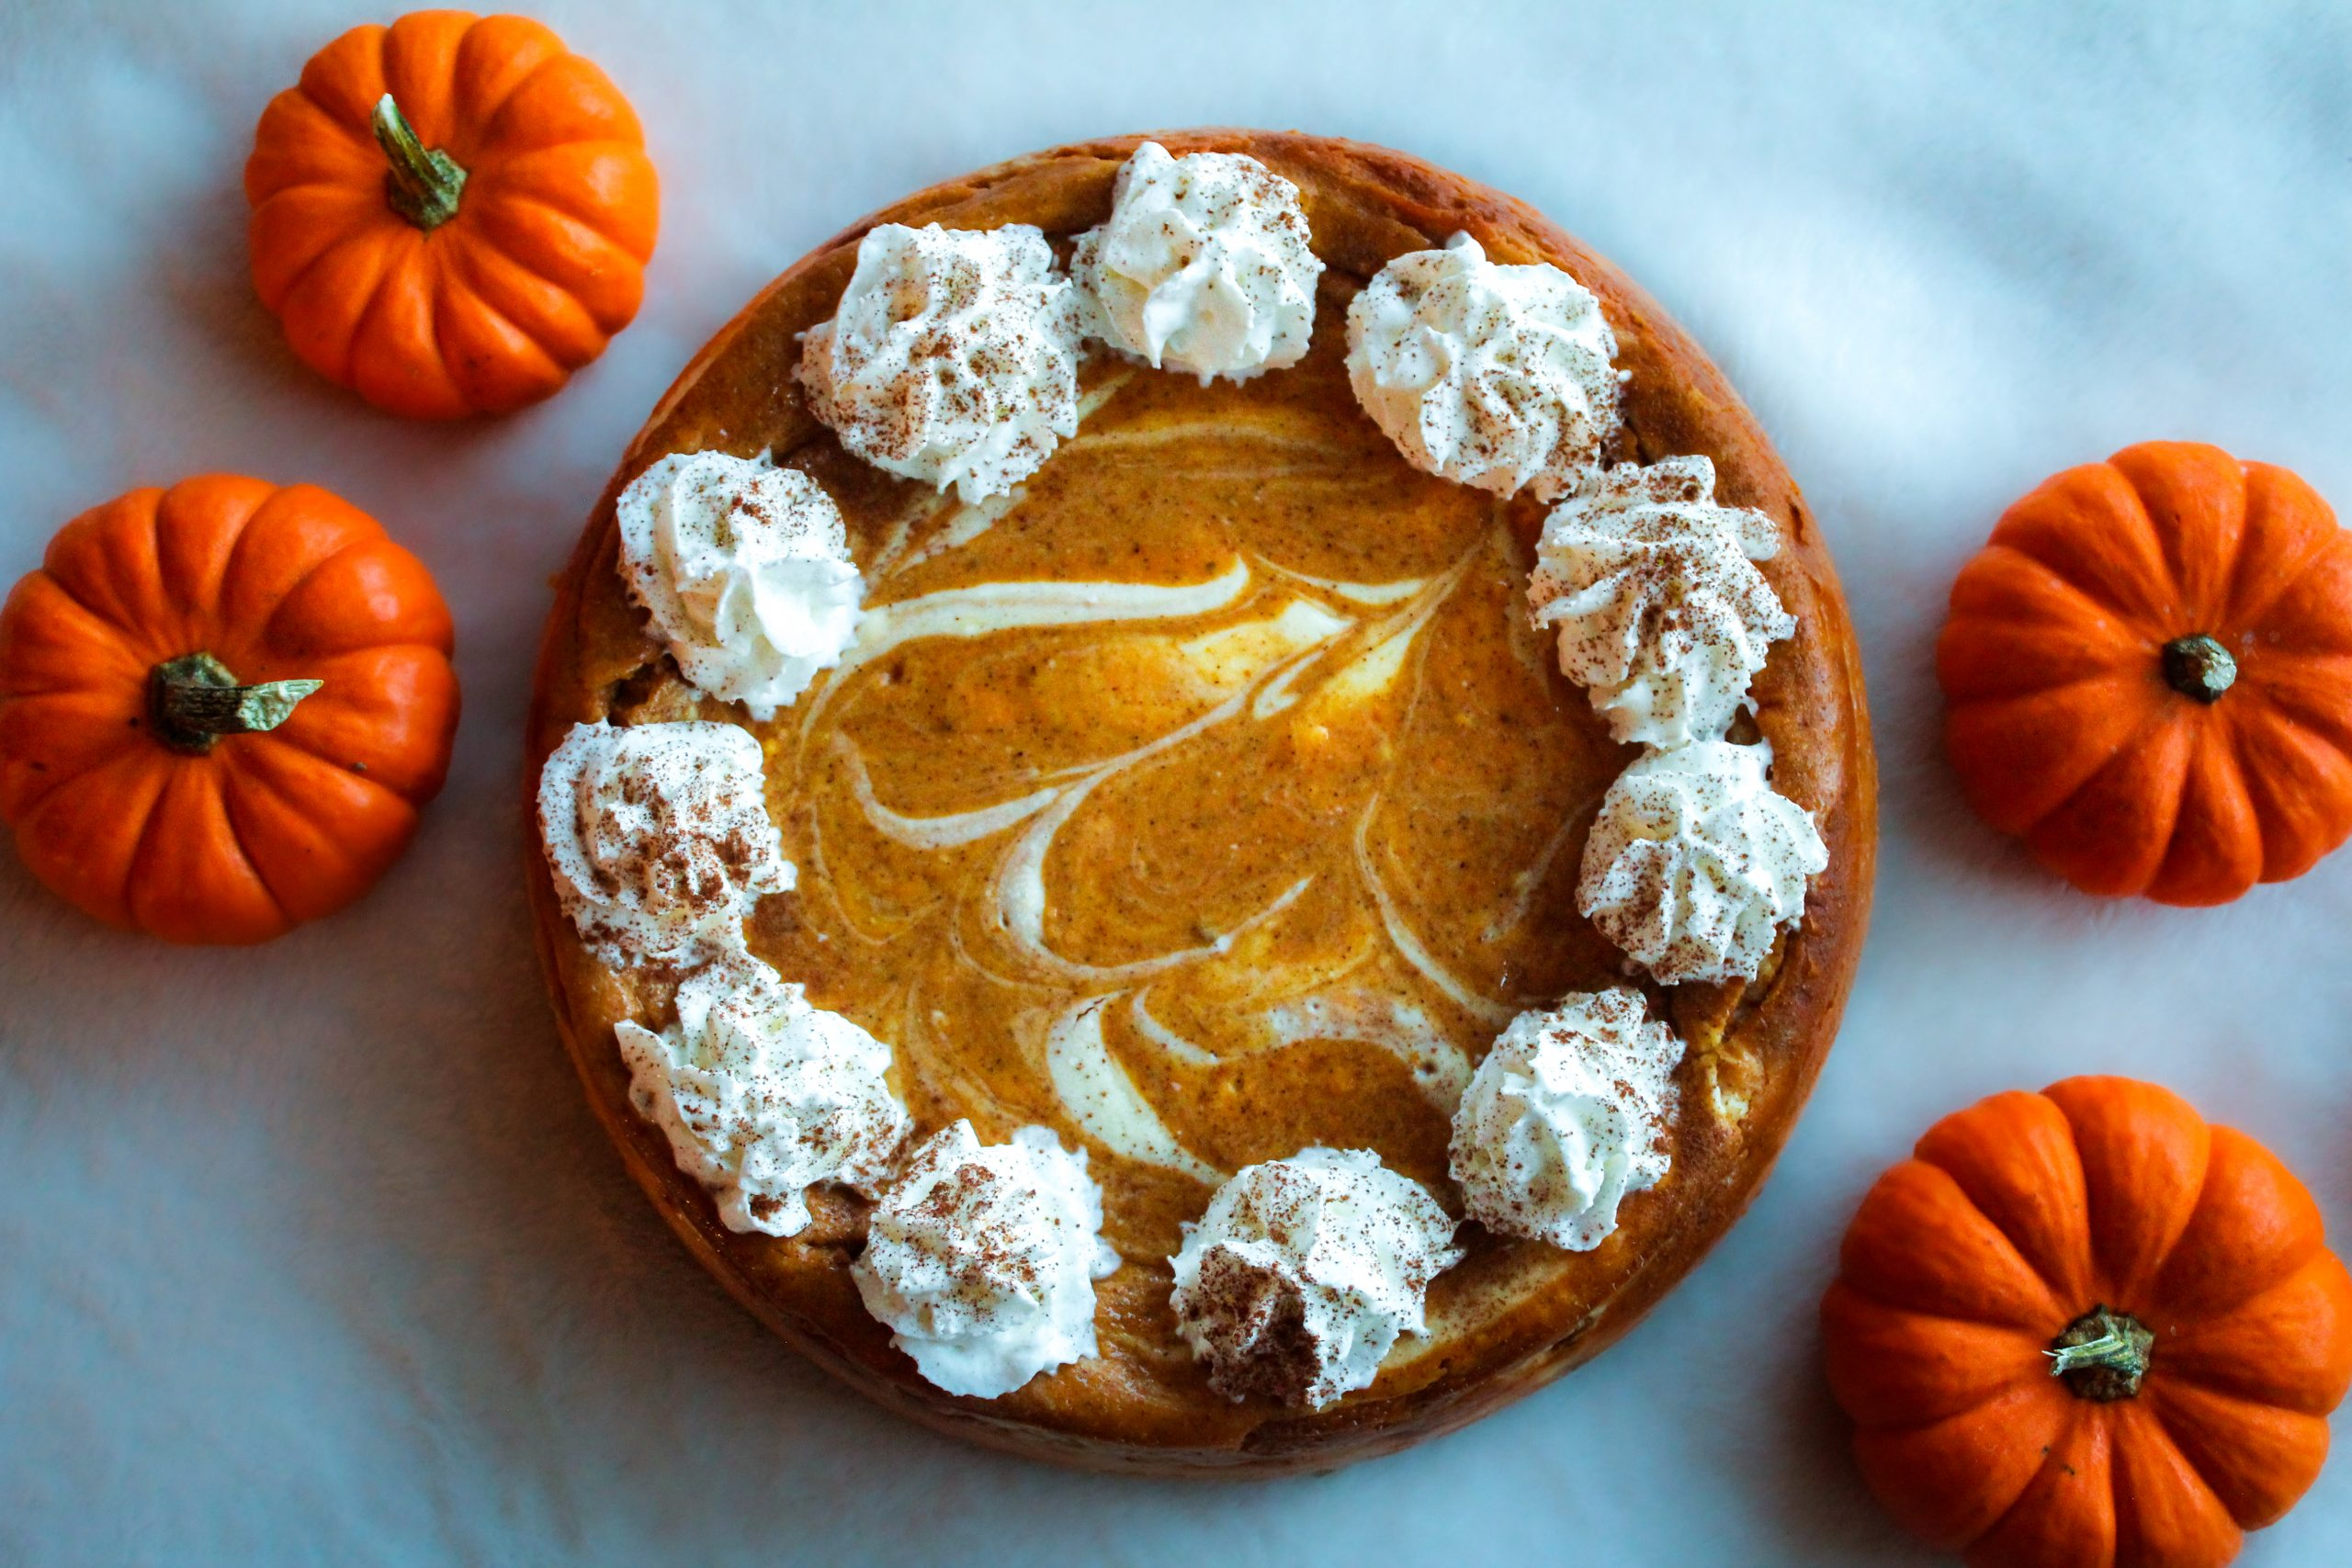 pumpkin swirl cheesecake full with whipped cream topping and mini pumpkin decorations